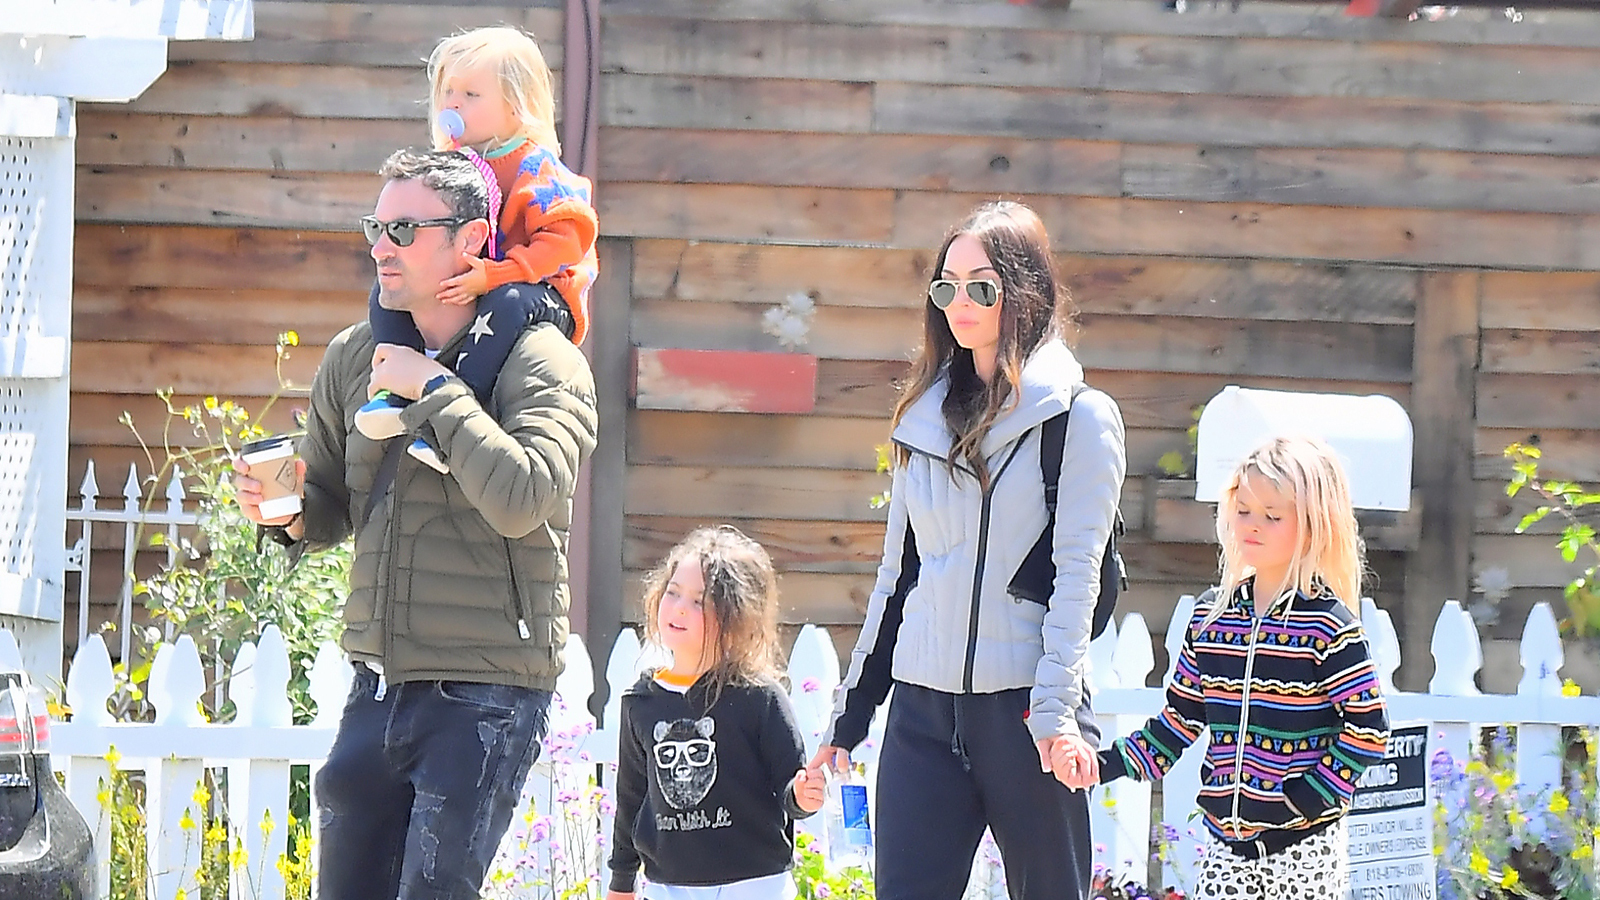 Megan Fox says Brian Austin wants to Portray her as a Bad Mother